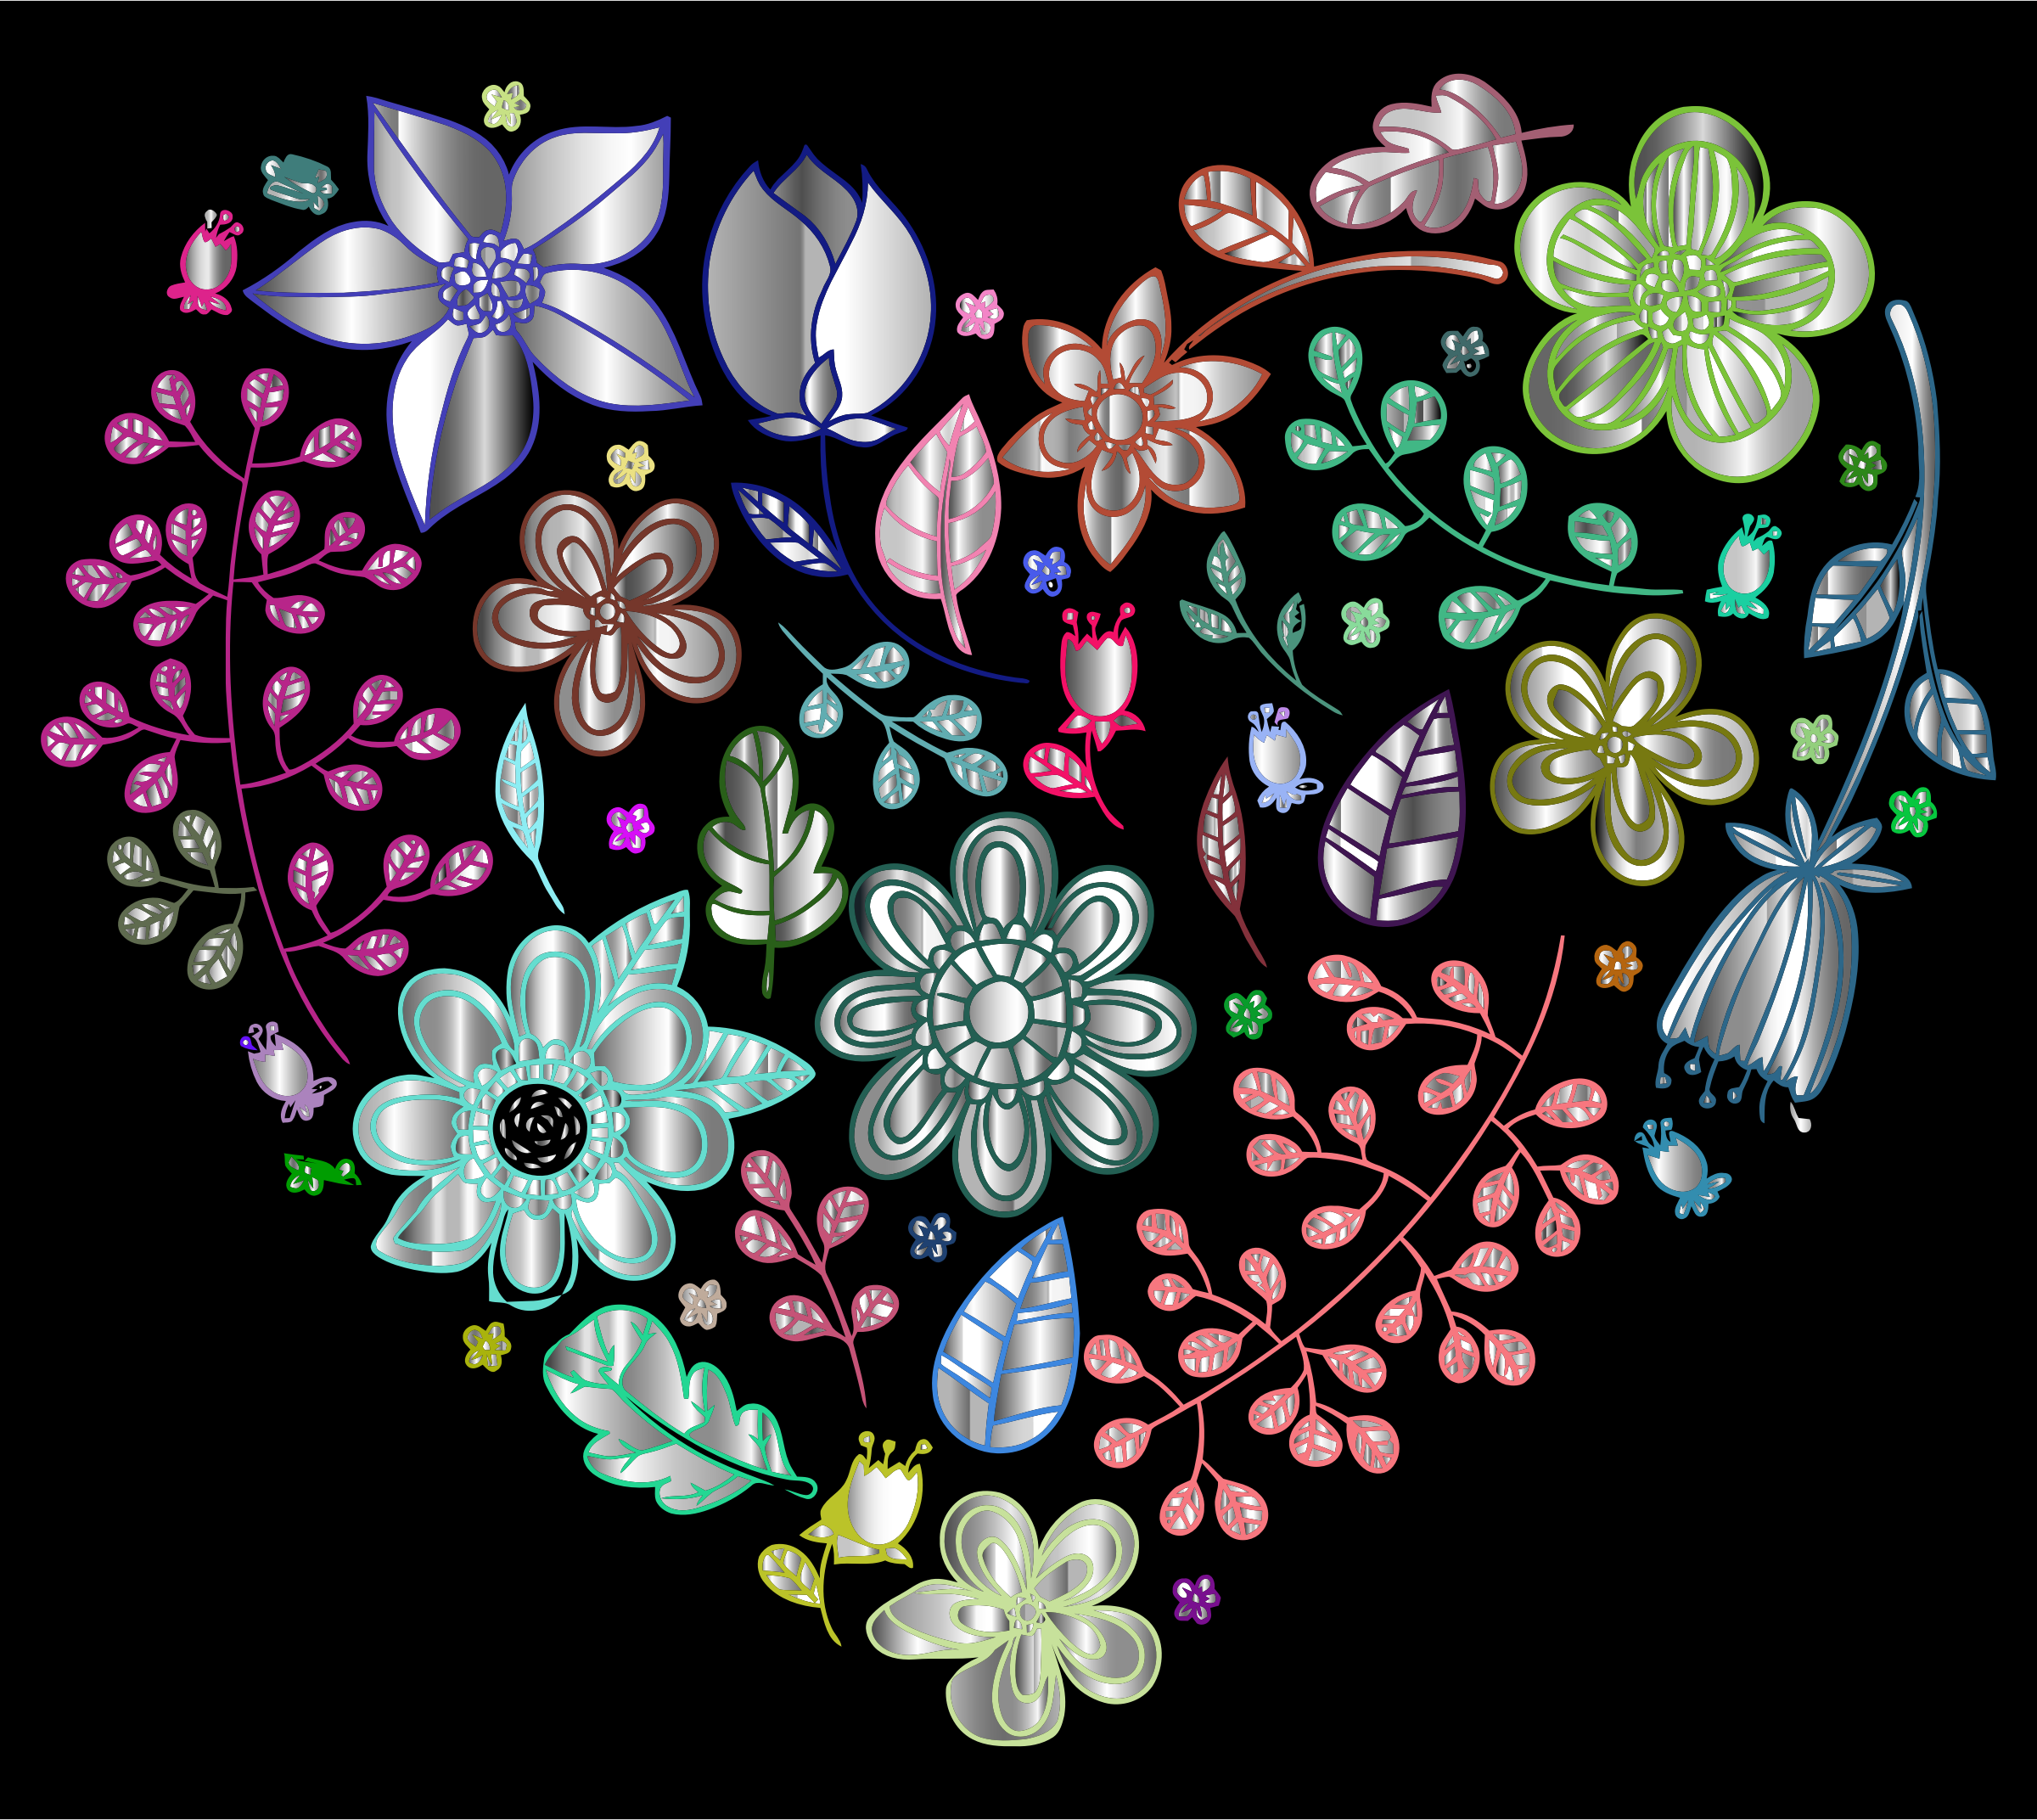 Prismatic Psychedelic Floral Heart 3 by GDJ